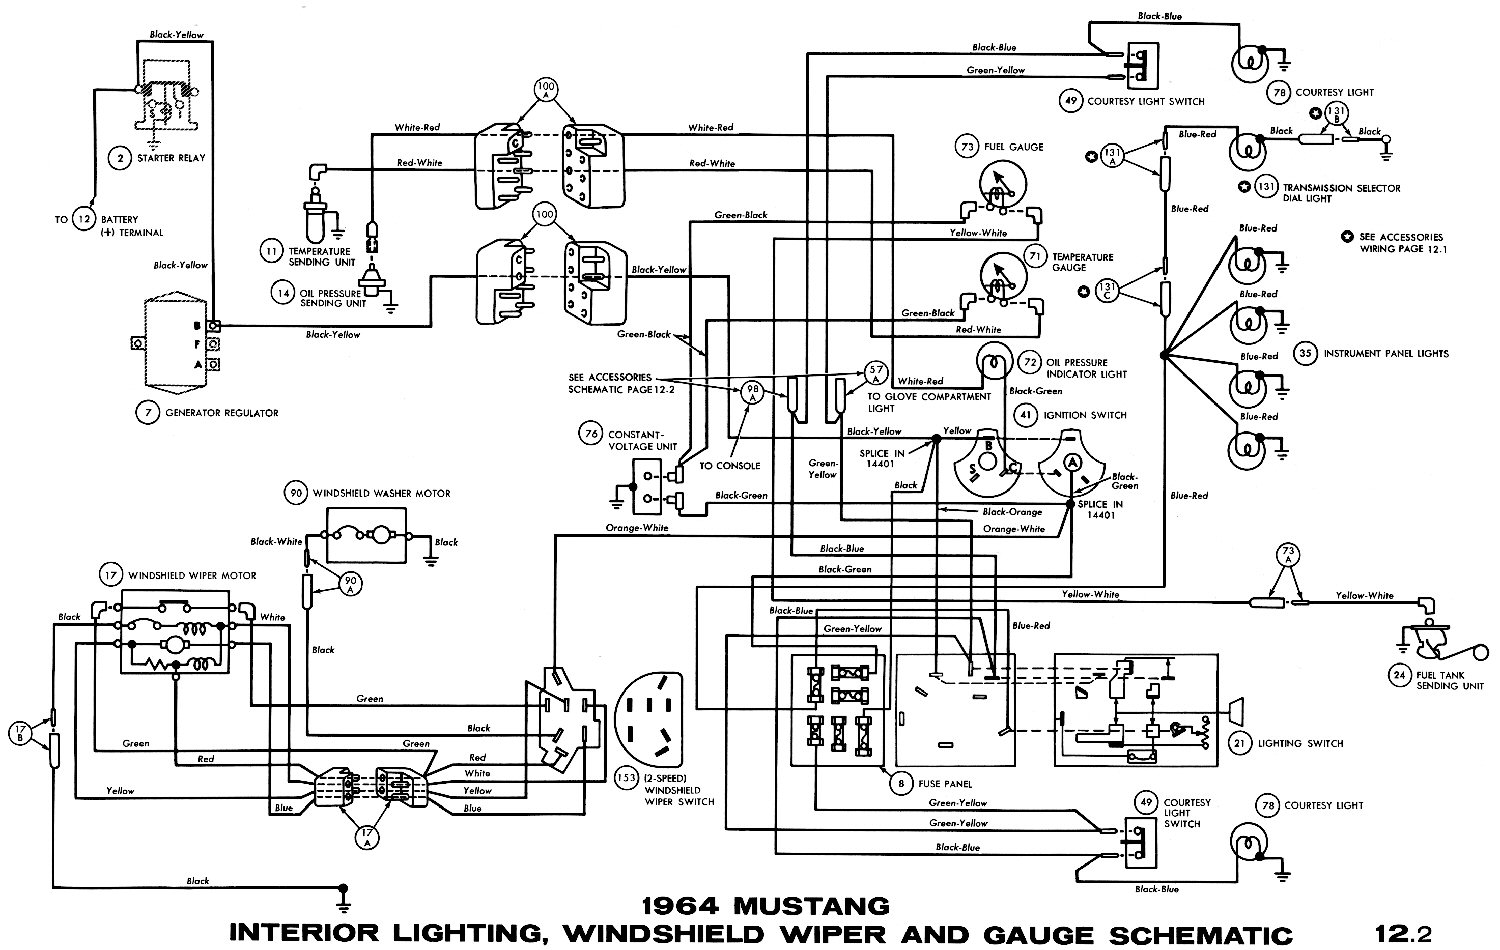 1964k 66 mustang wiring diagram online 65 ford mustang wiring diagram 1965 ford mustang wiring diagrams at gsmportal.co